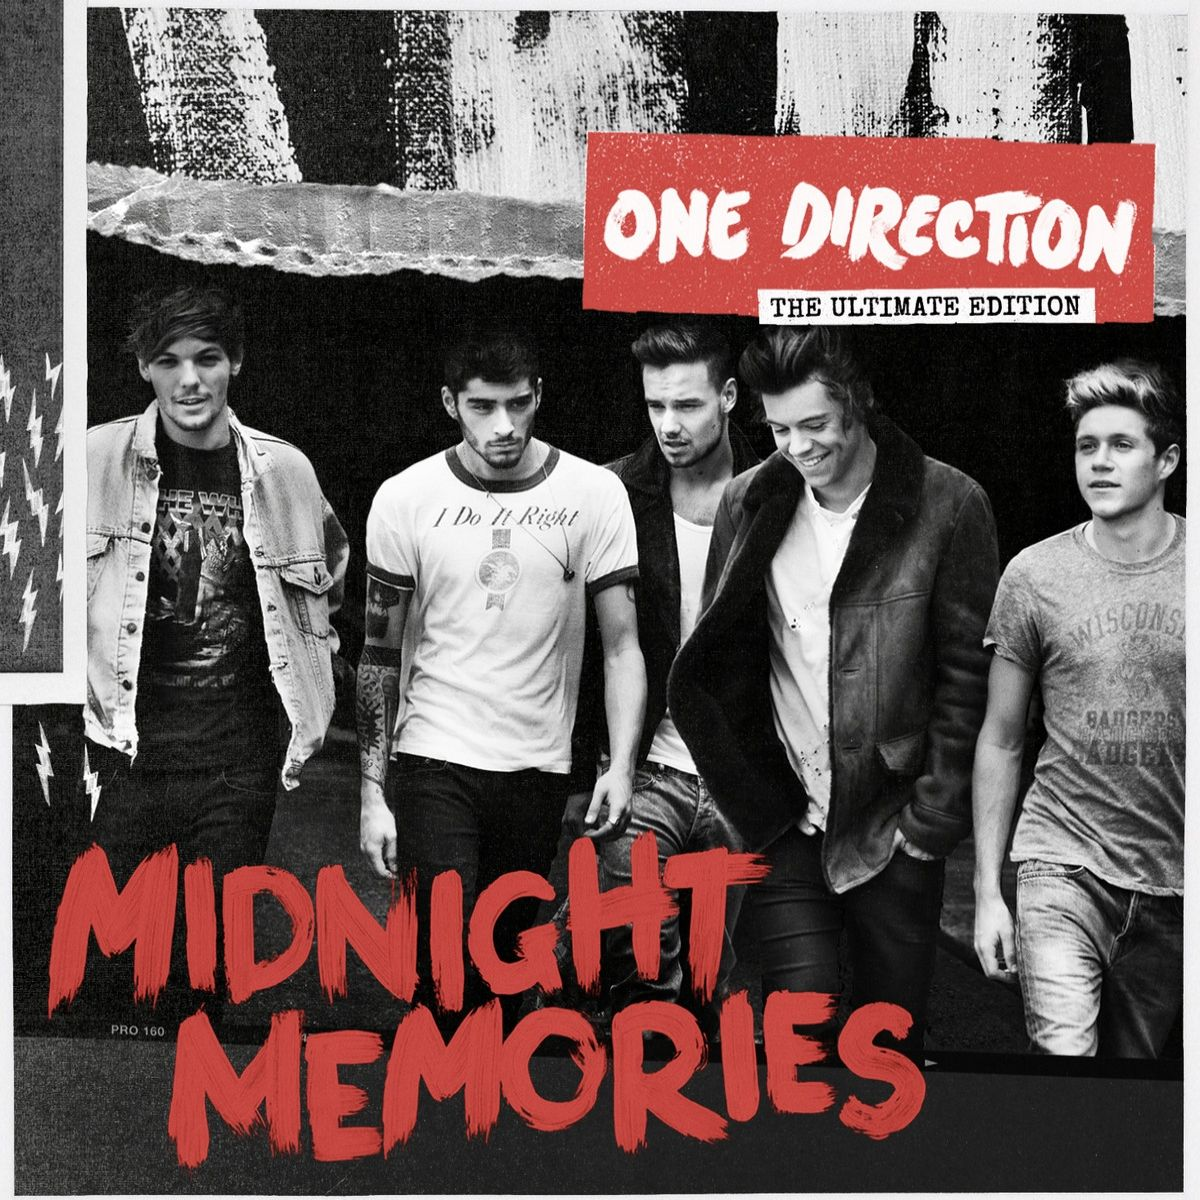 One Direction - Midnight Memories album cover